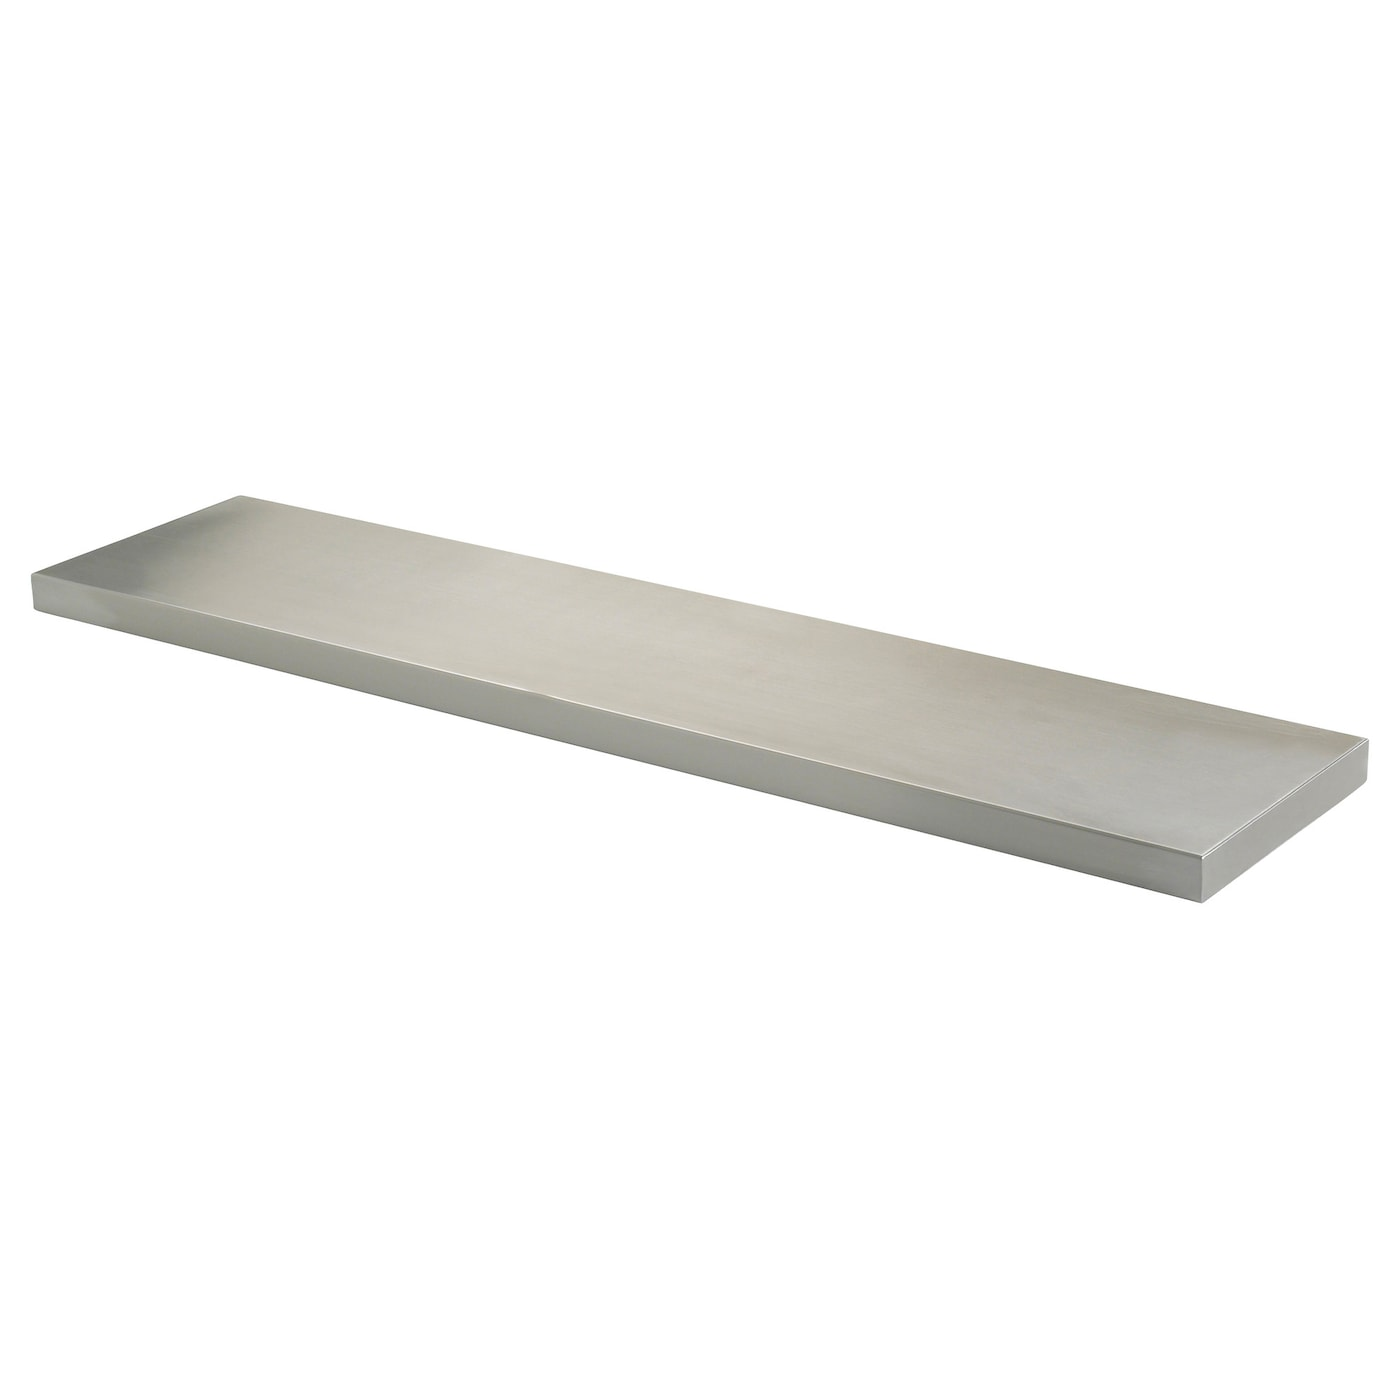 Small Floating Shelf floating shelves, wall shelves & shelf brackets | ikea